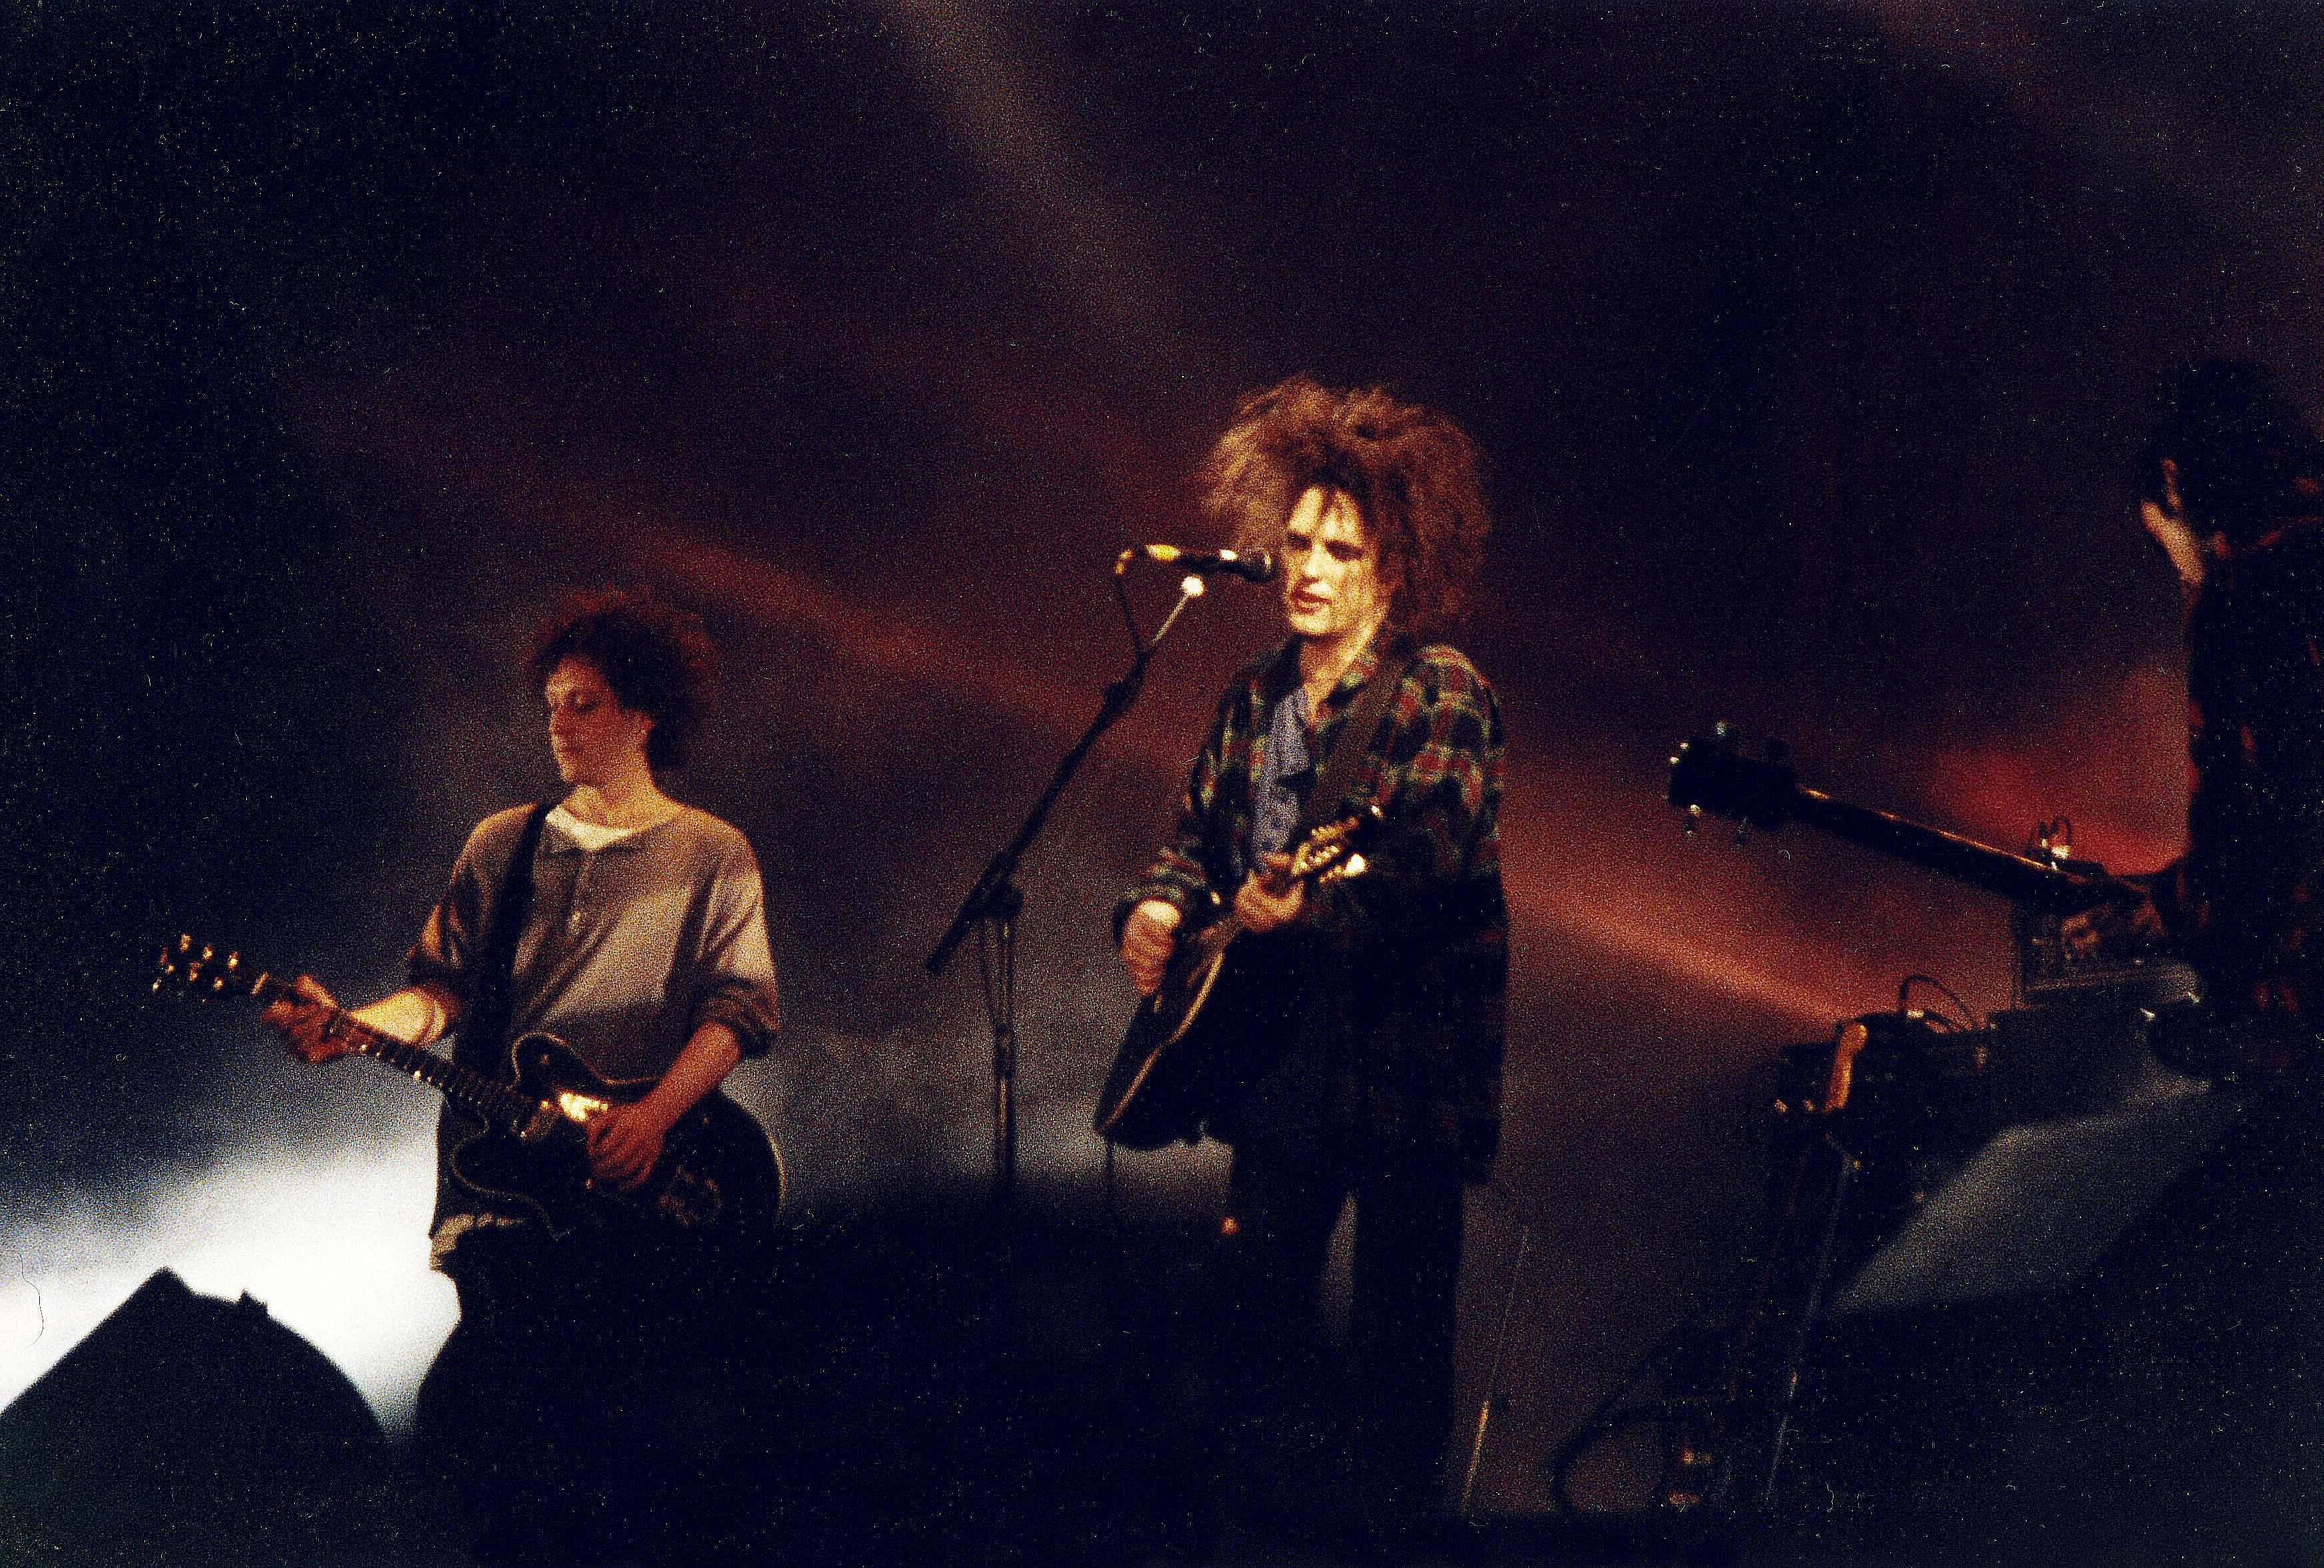 Led Memorably By Distinctive Frontman Robert Smith Center English Alternative Band The Cure